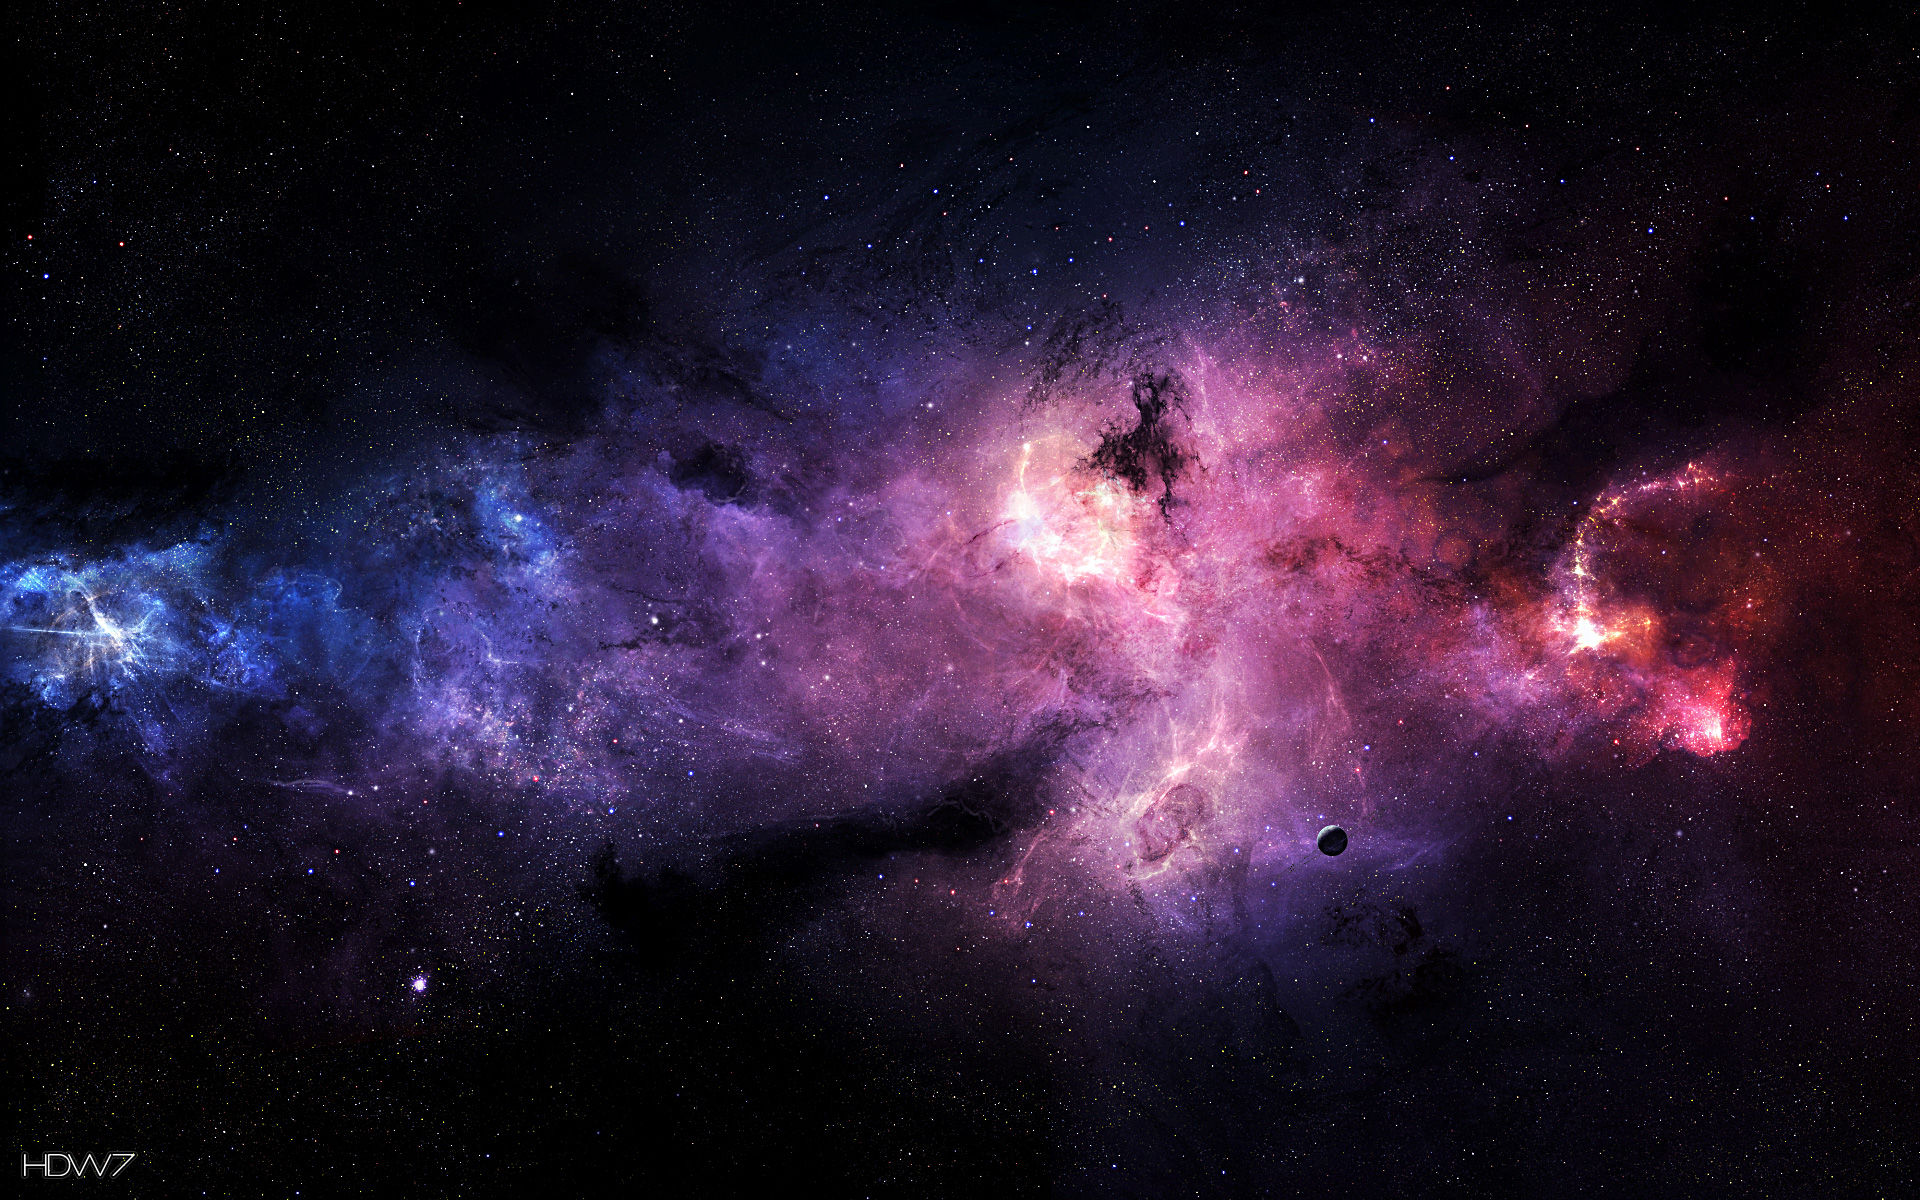 Astronomy Desktop Backgrounds - WallpaperSafari